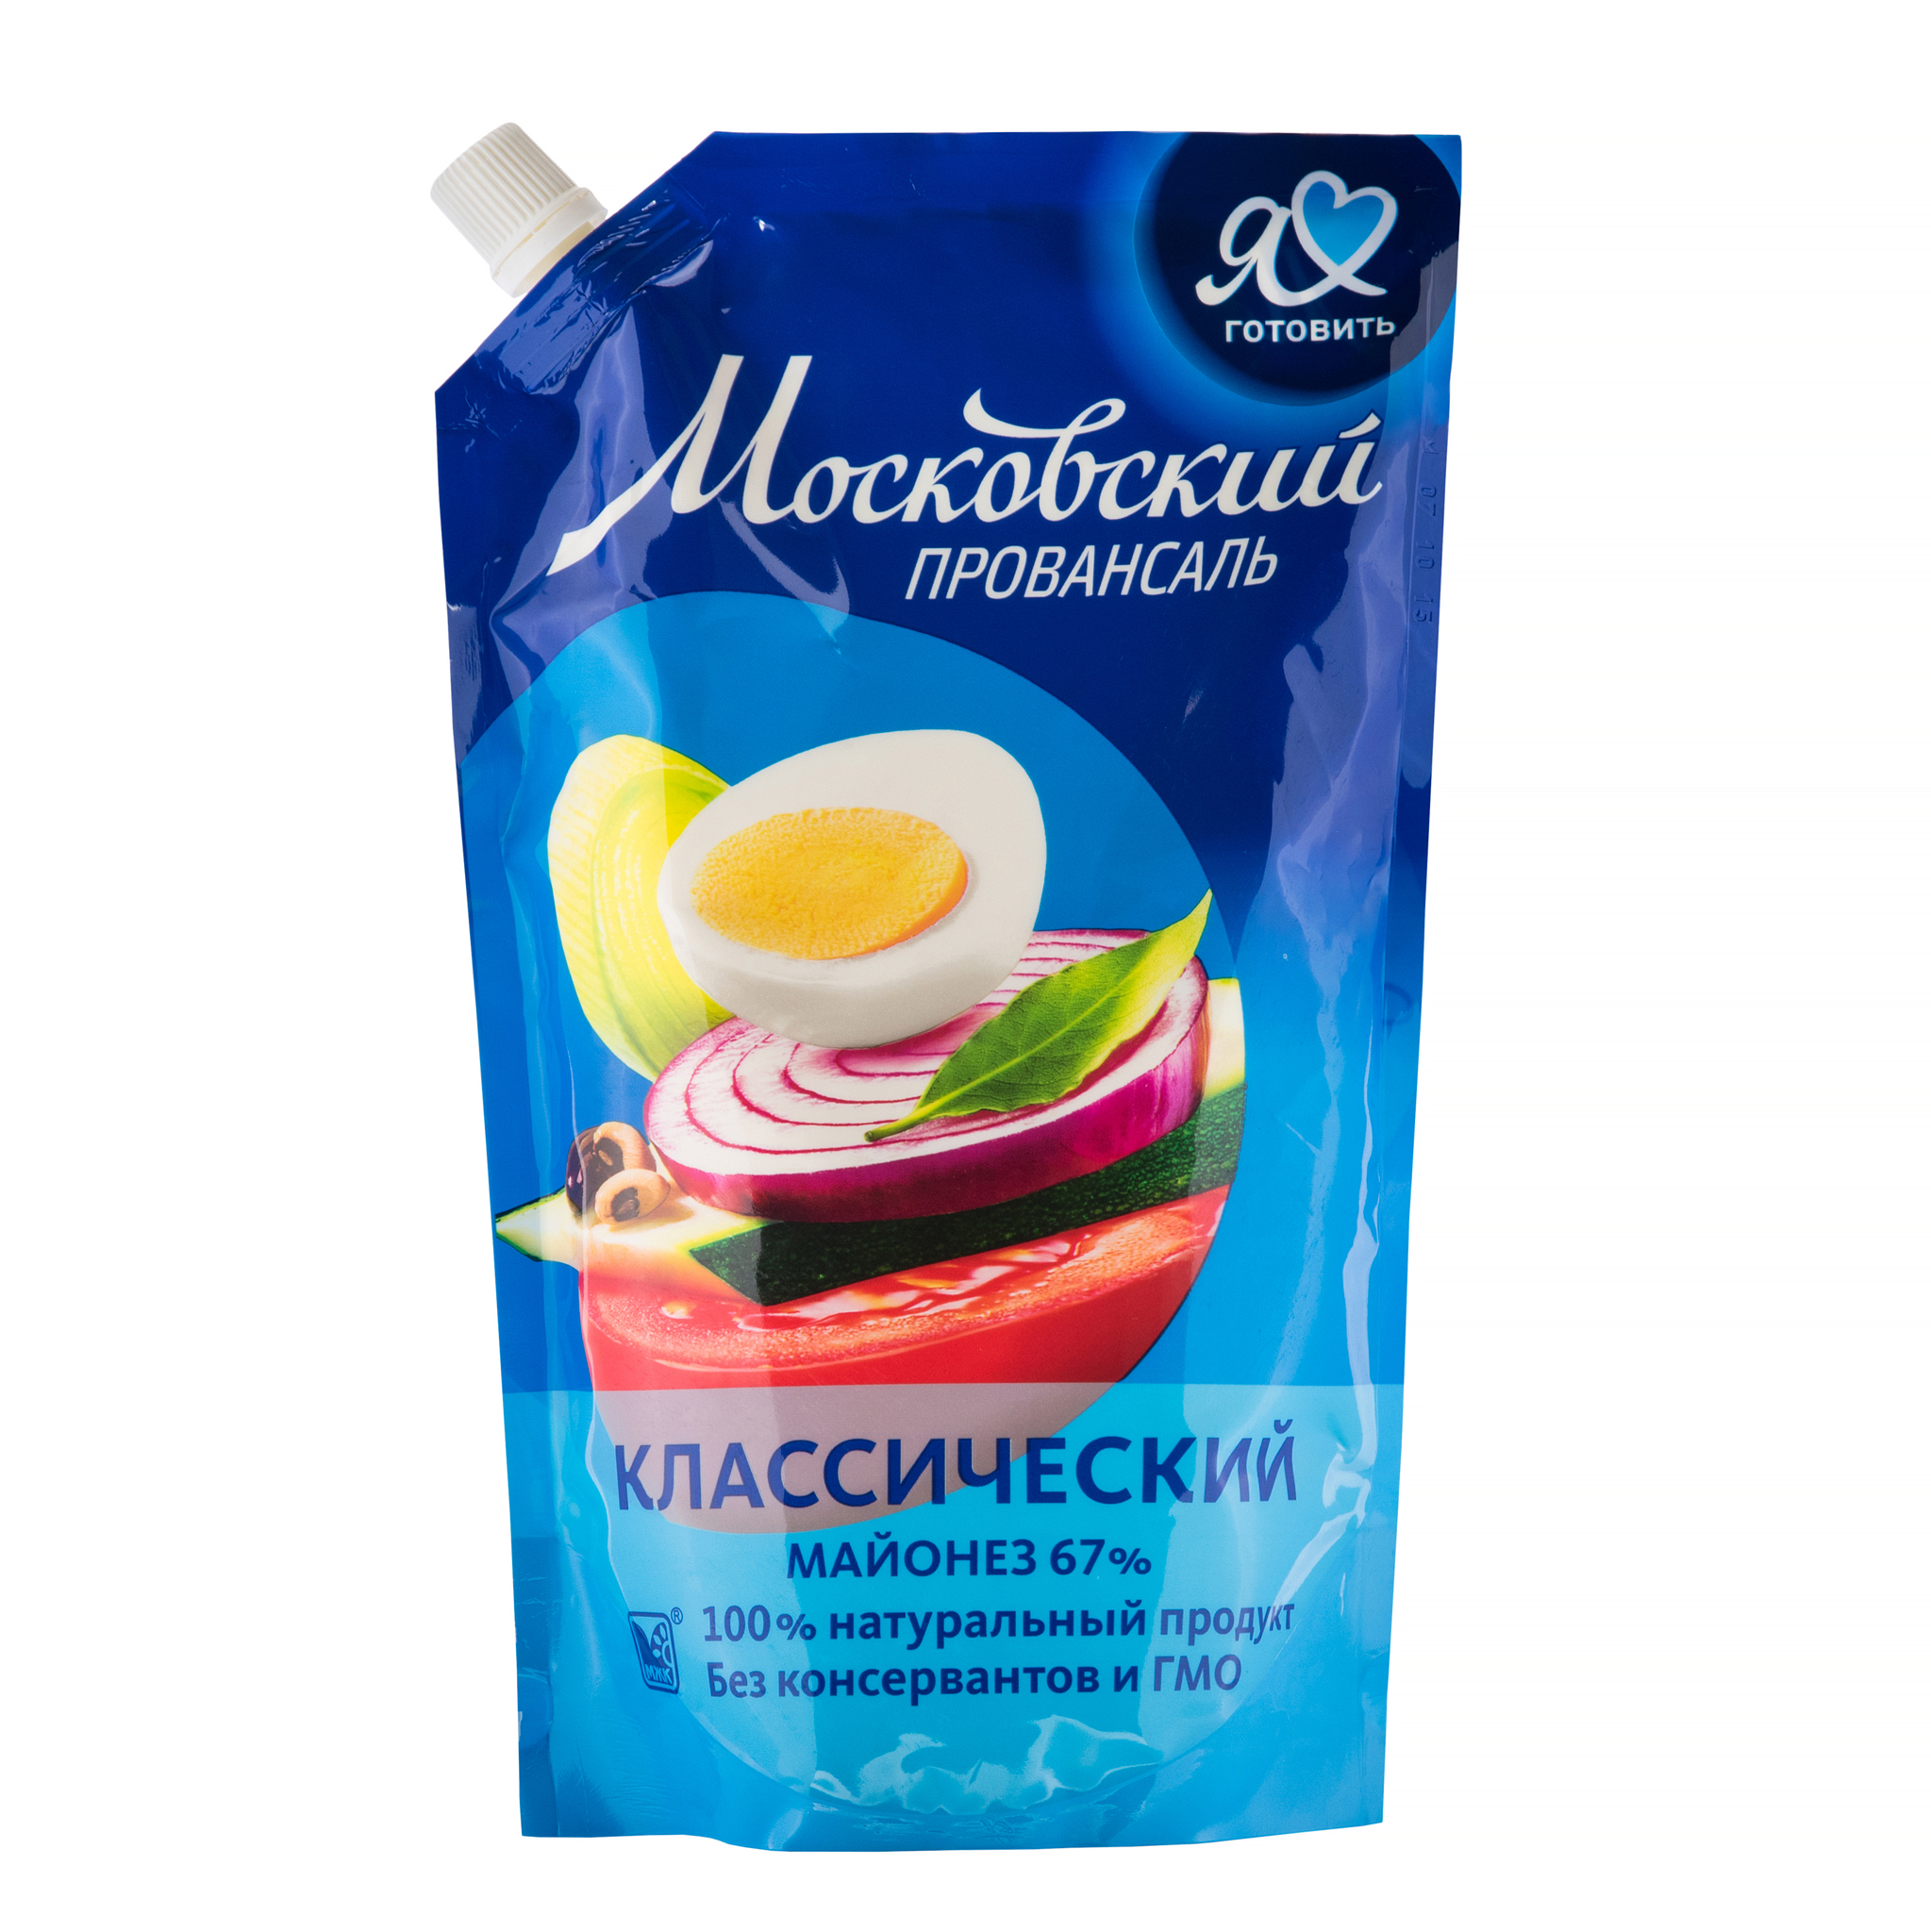 """""""Population survey and testing of """"Moscow Provansal"""" mayonnaise commercial in the territory of the Republic of Uzbekistan"""""""